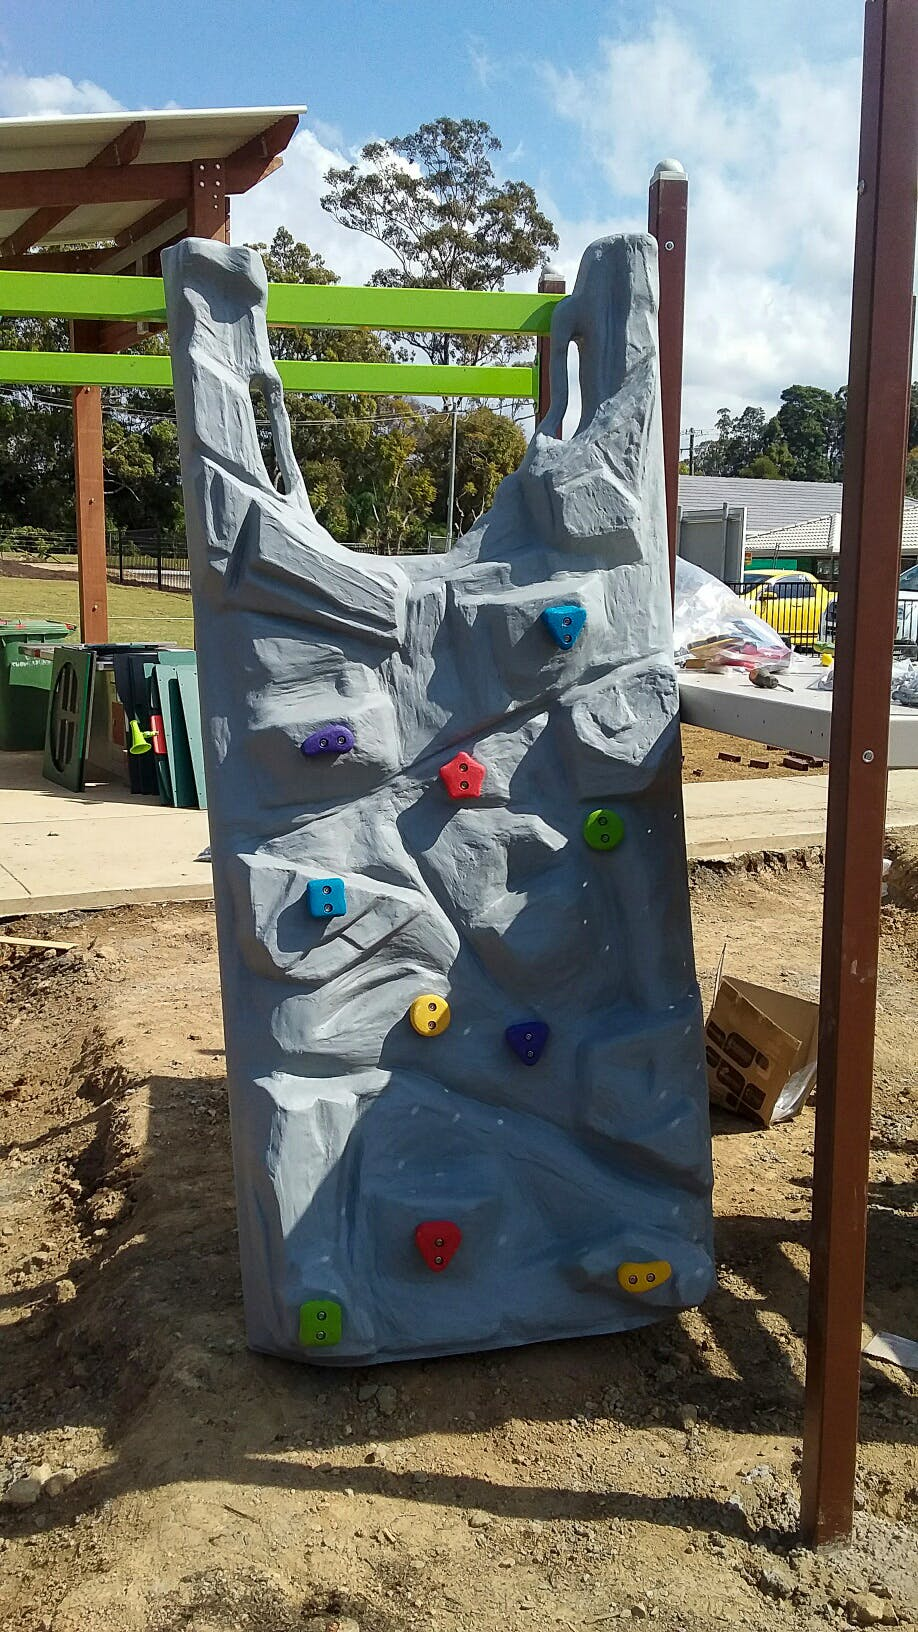 Climbing wall for kiddie cliffhangers